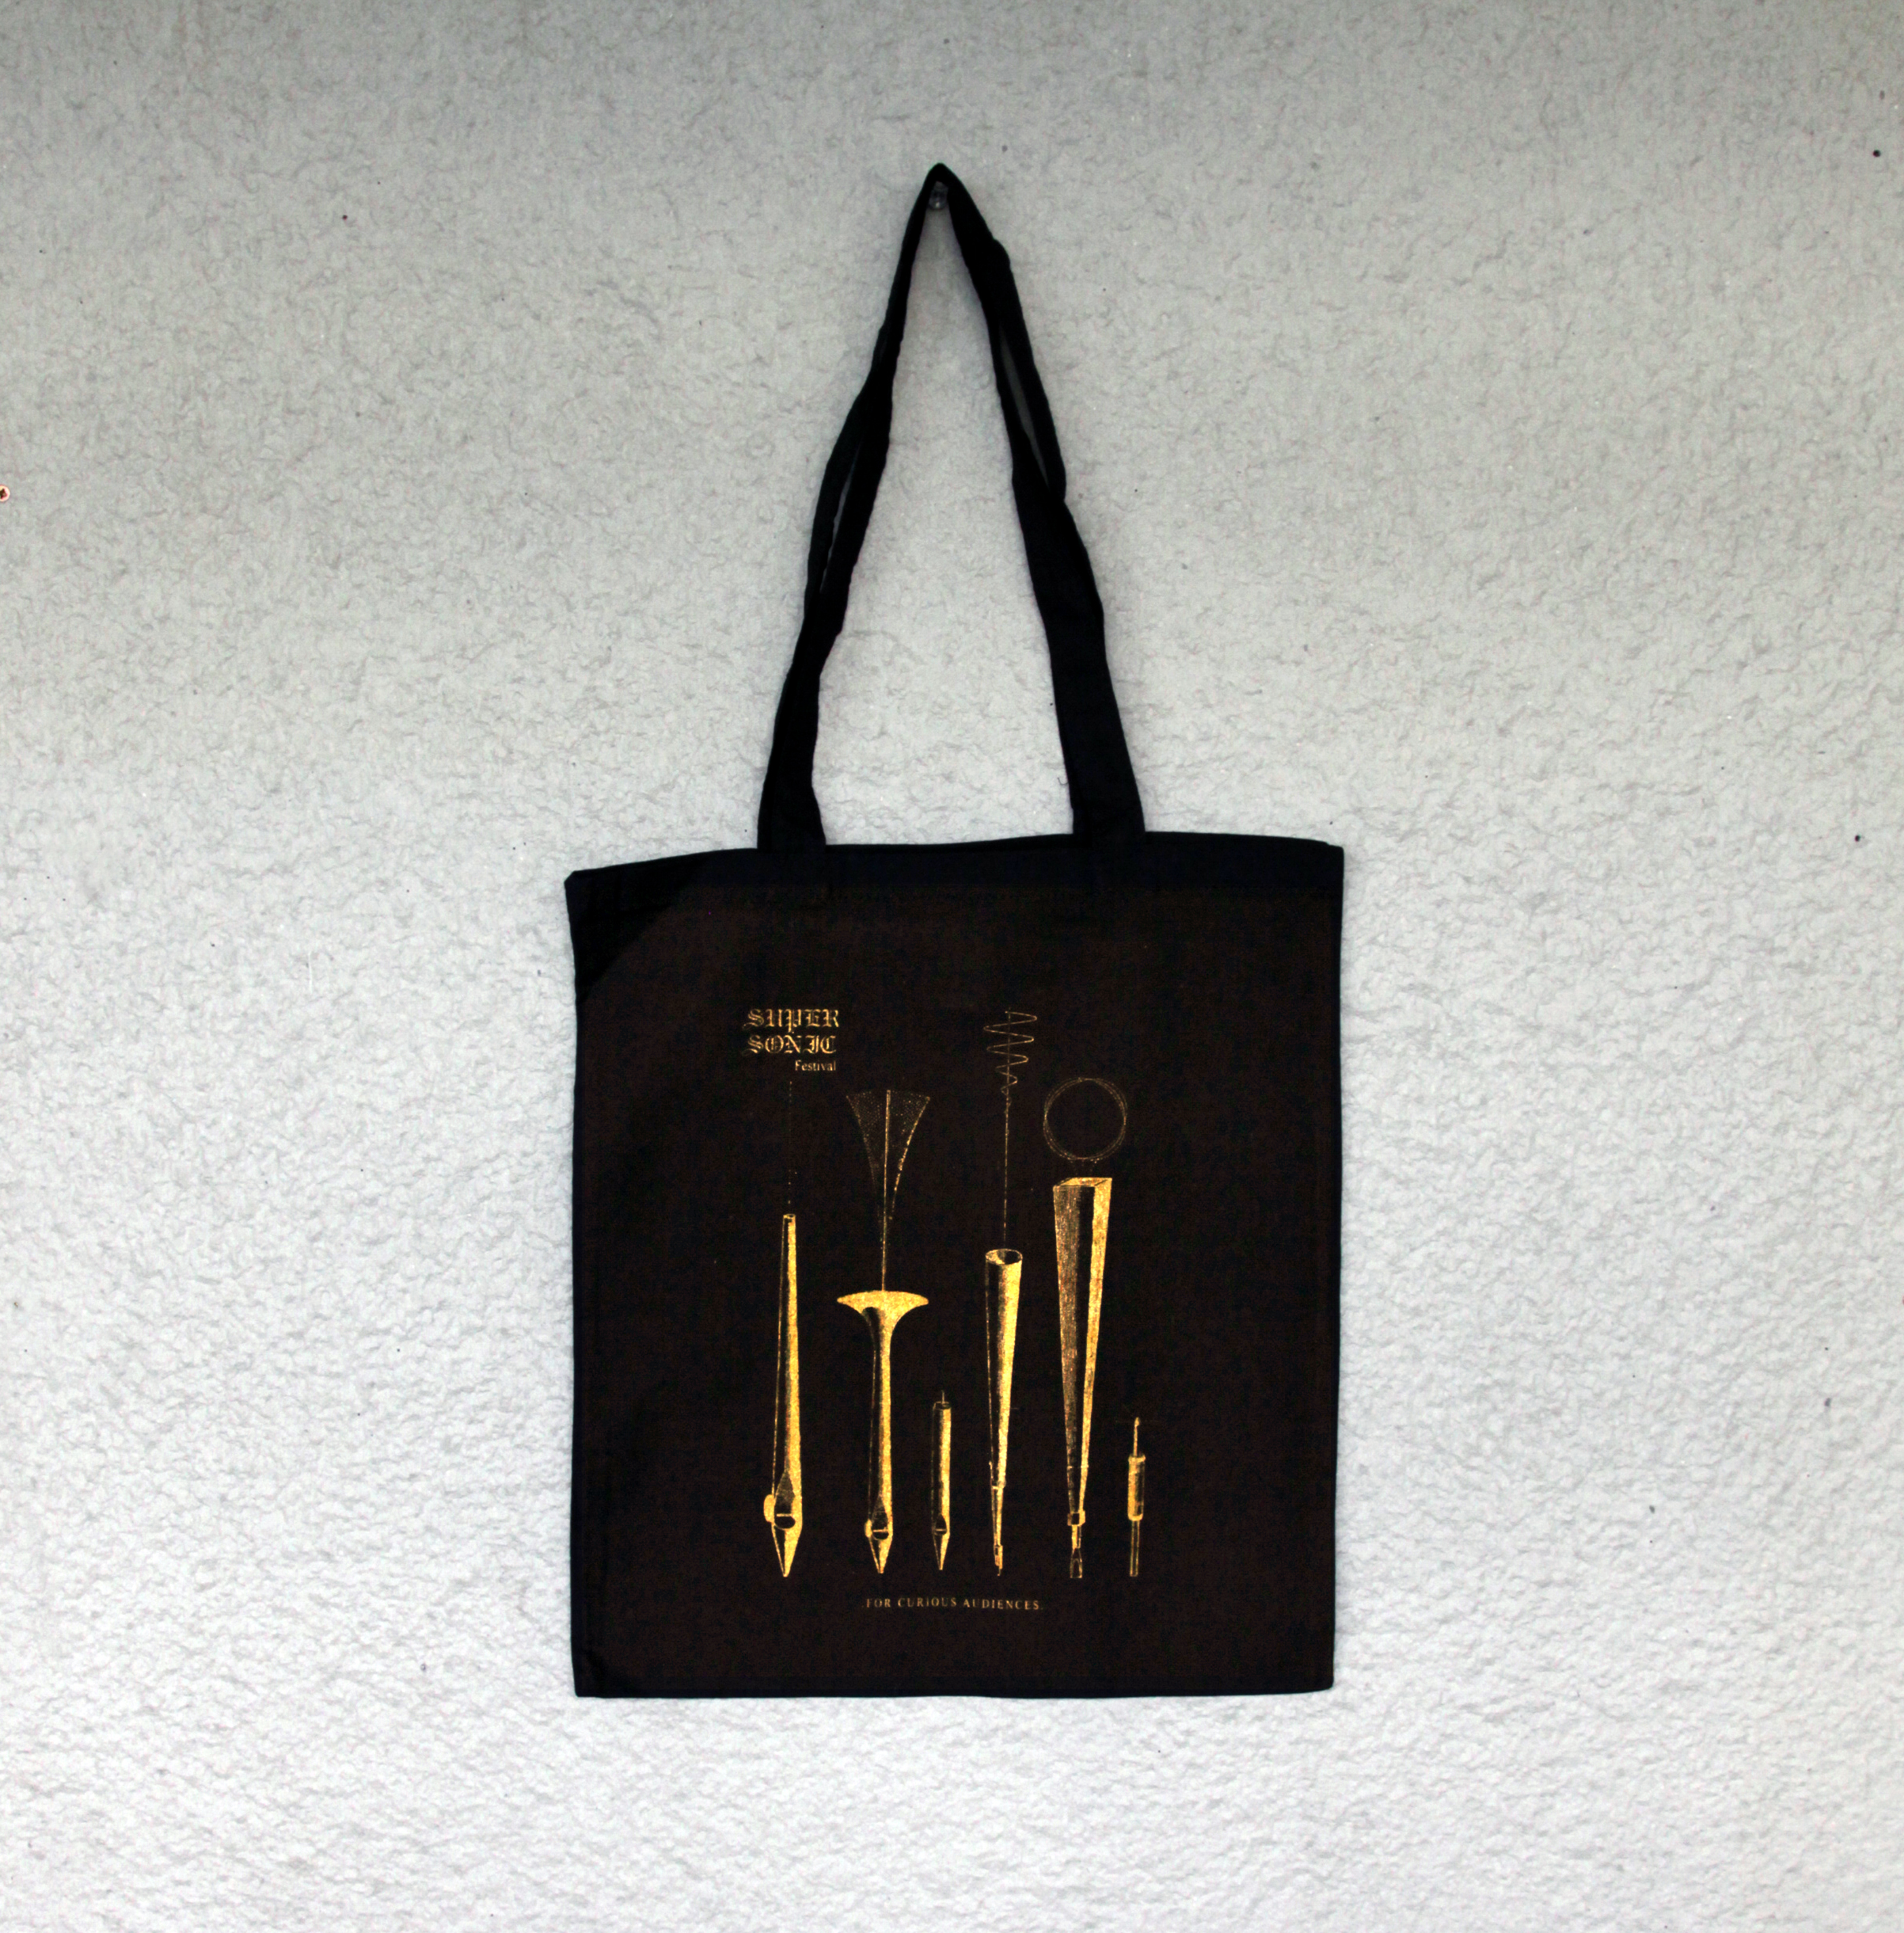 Supersonic 2015 Tote bag